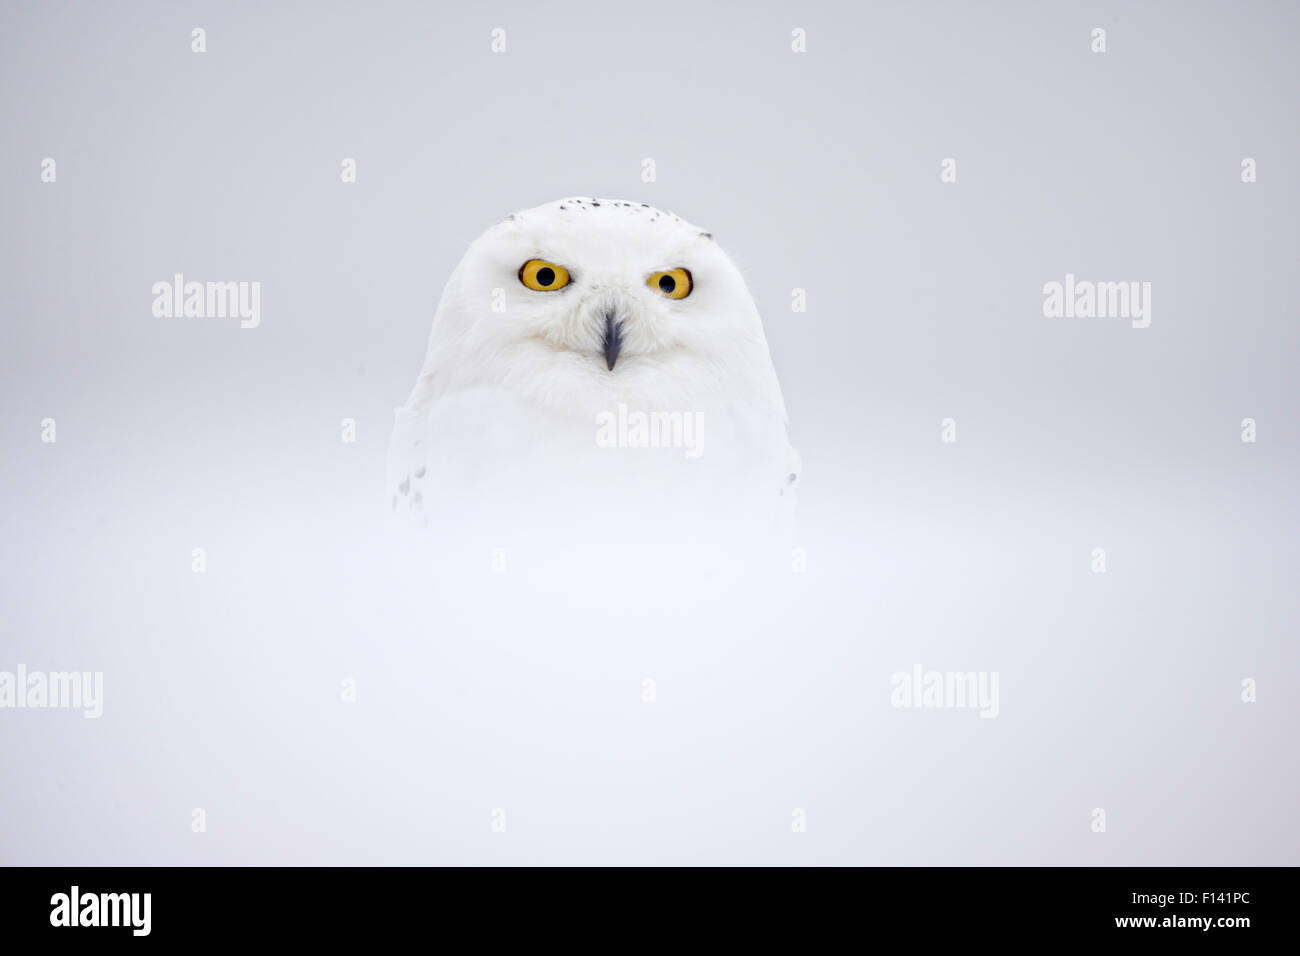 Snowy Owl (Bubo scandiacus) in snow, UK, January. Captive. - Stock Image